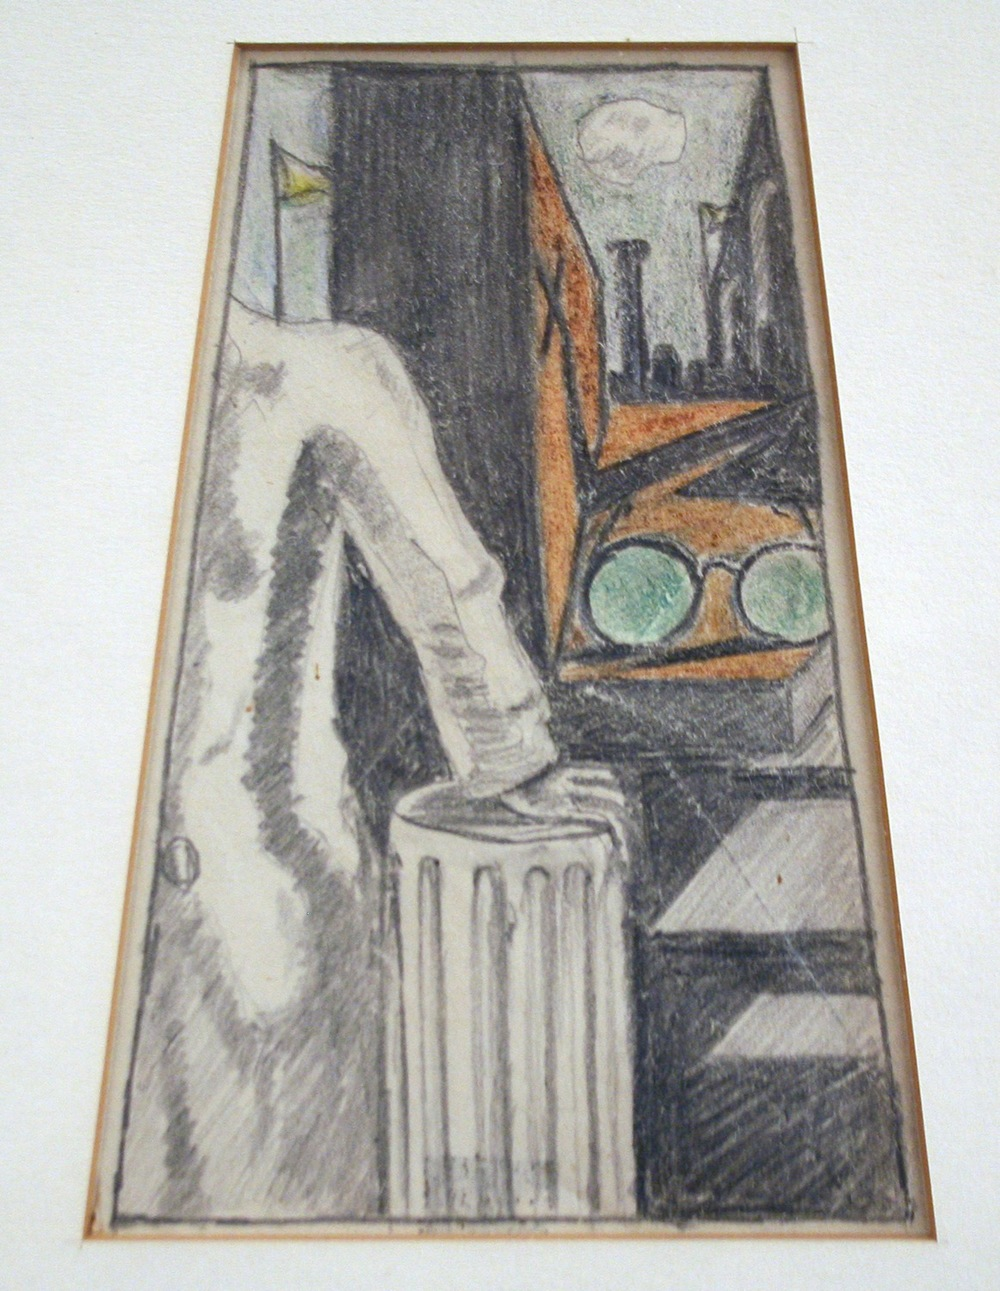 Andre Breton Drawing of De Chirico 4 1/2